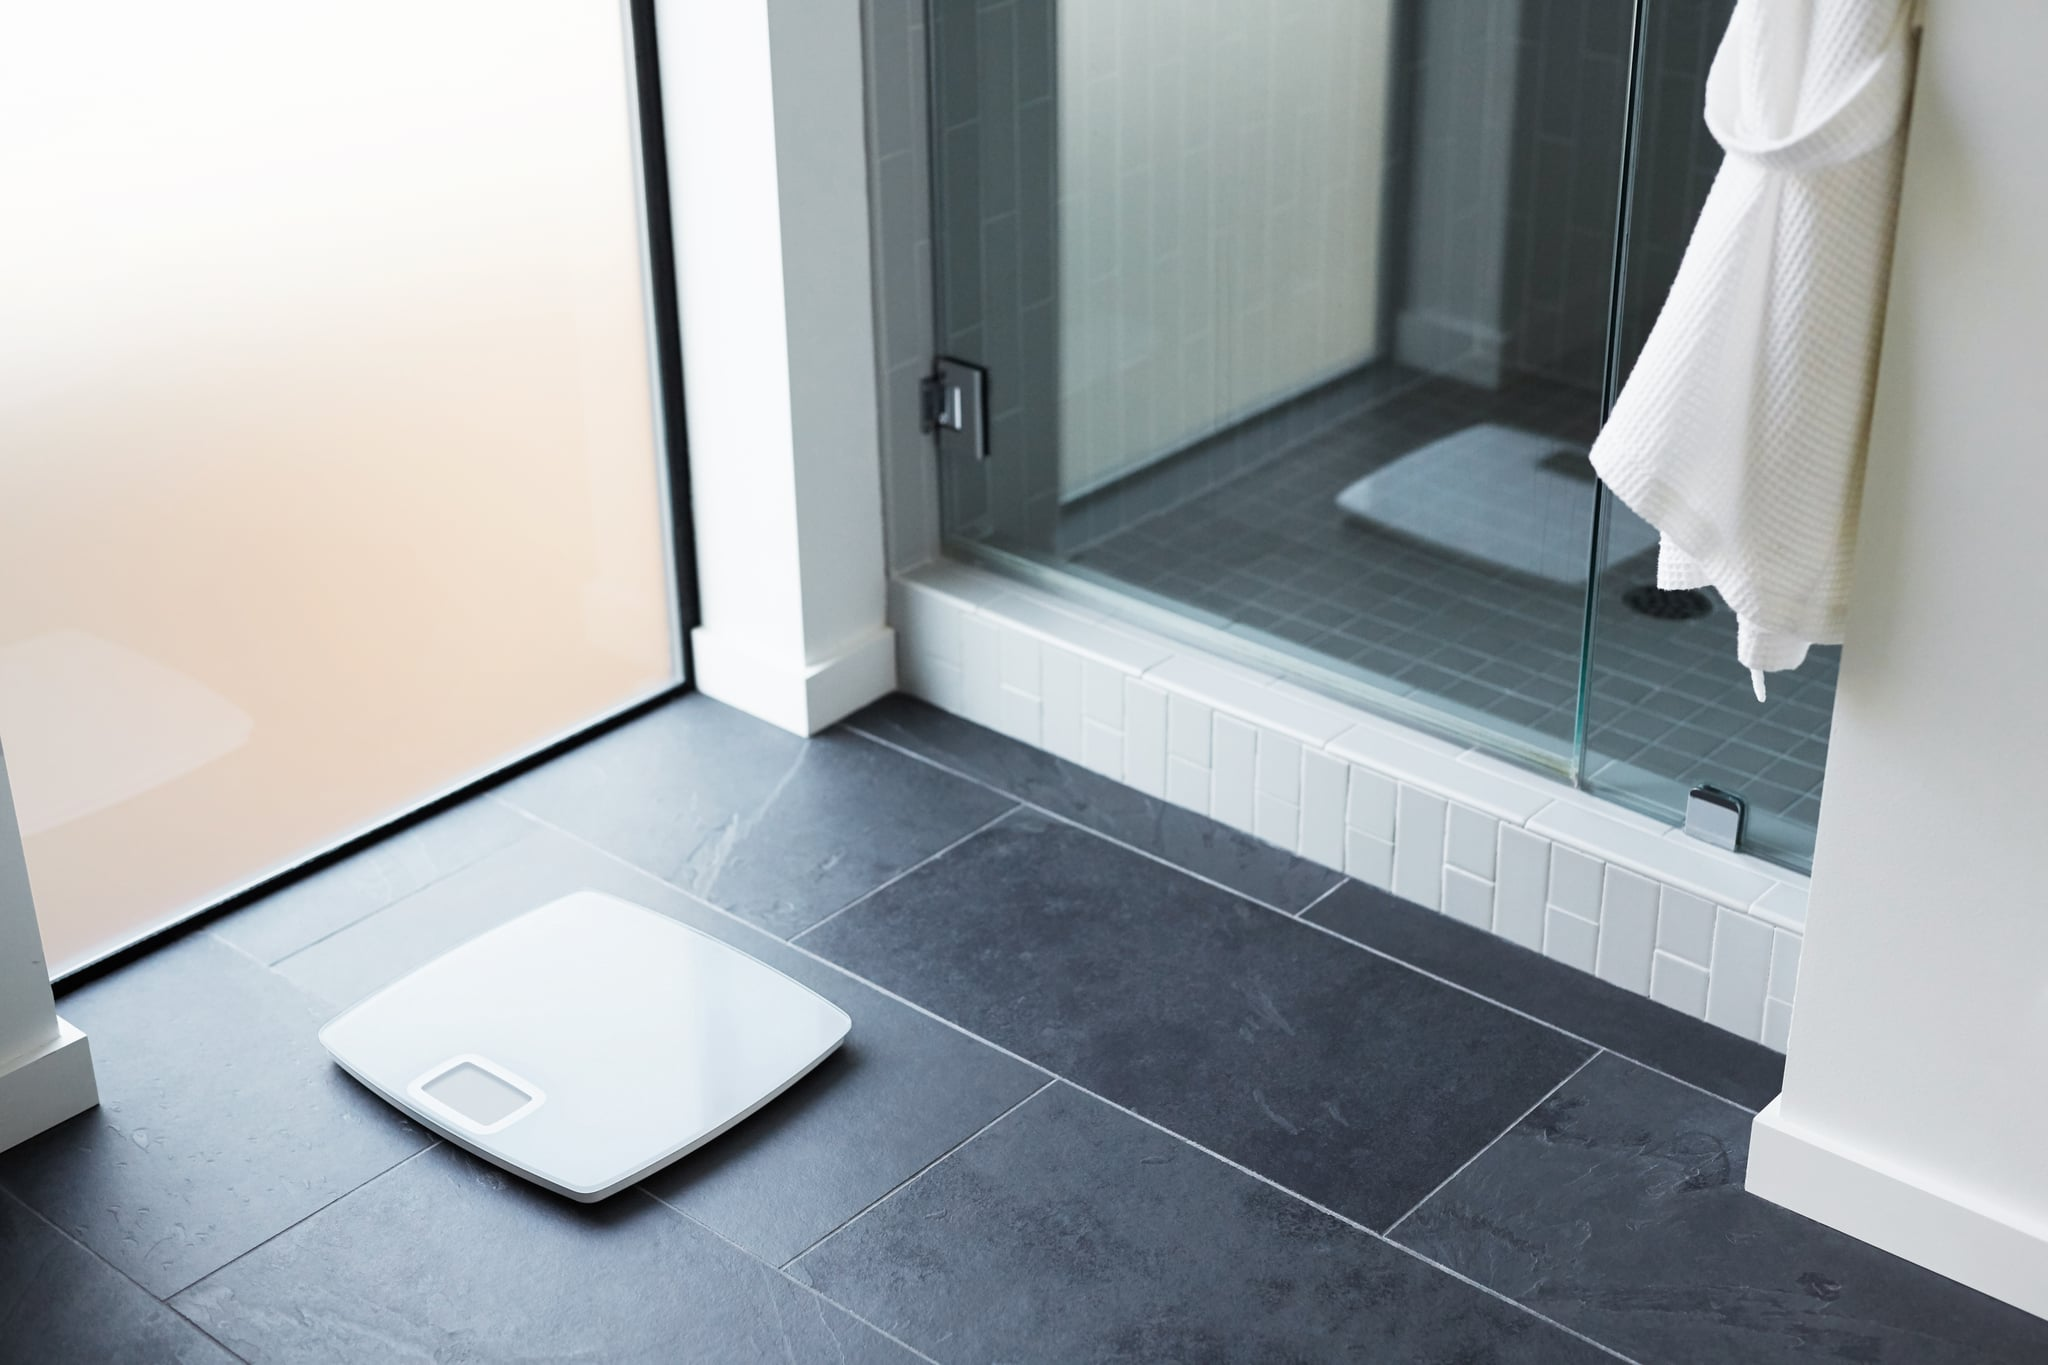 White Stains On Black Tiles And Work Surfaces Popsugar Home